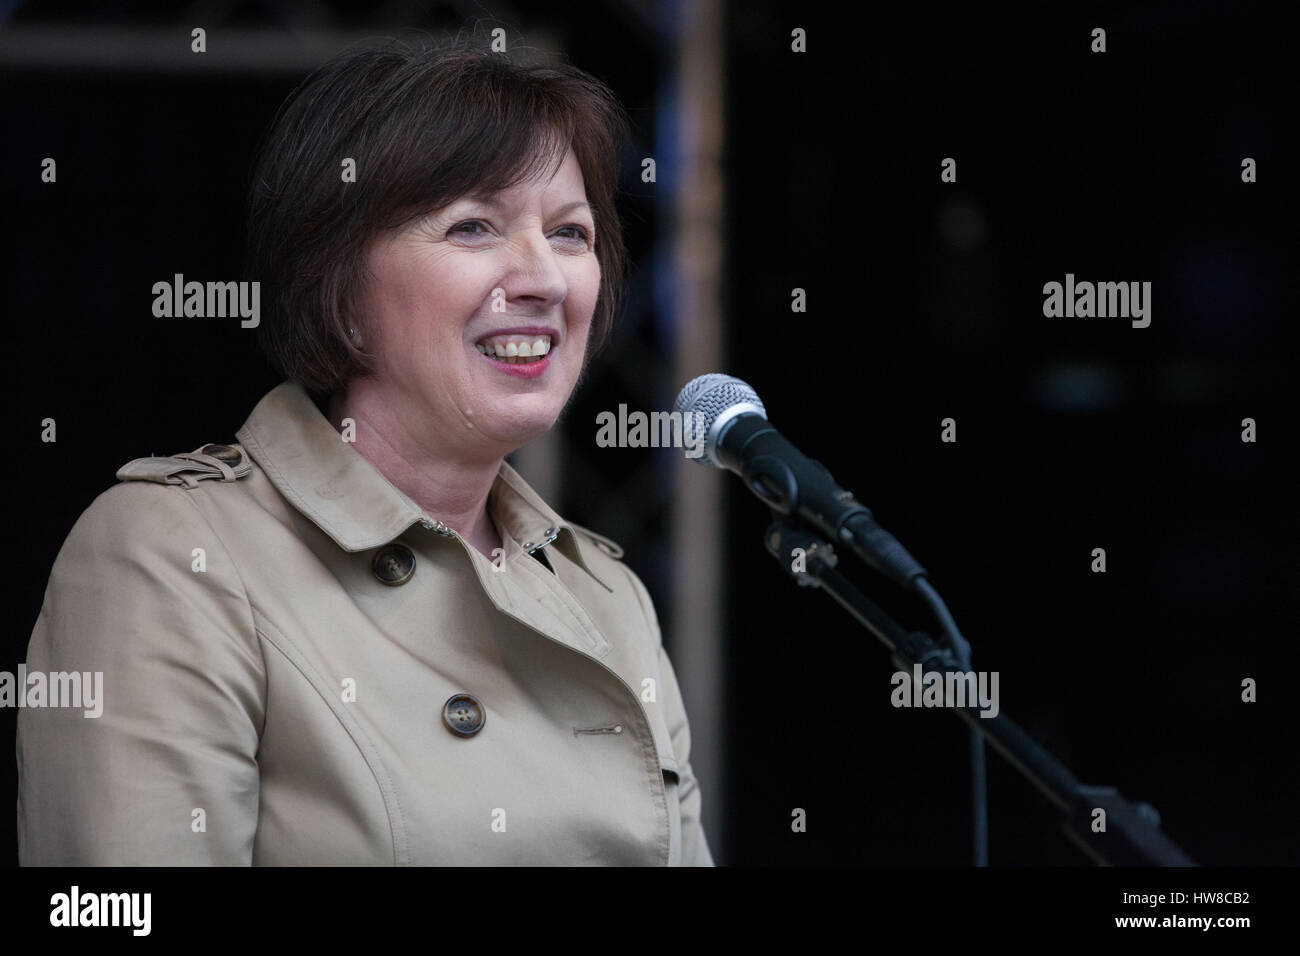 London, UK. 18th March, 2017. Frances O'Grady, General Secretary of the Trades Union Congress (TUC), addresses - Stock Image